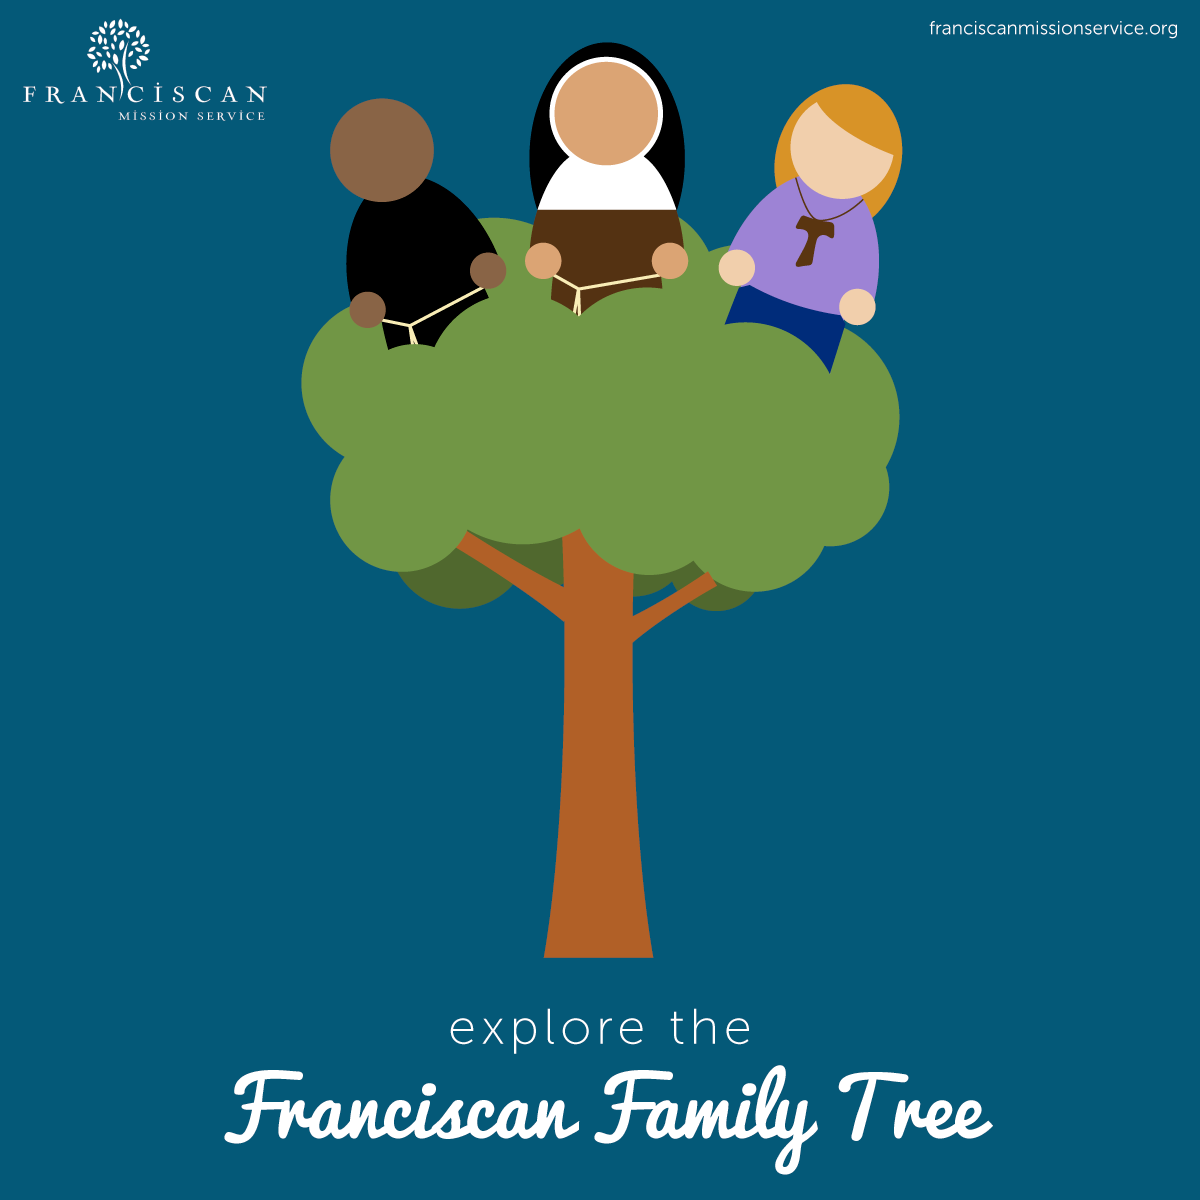 franciscantree.png